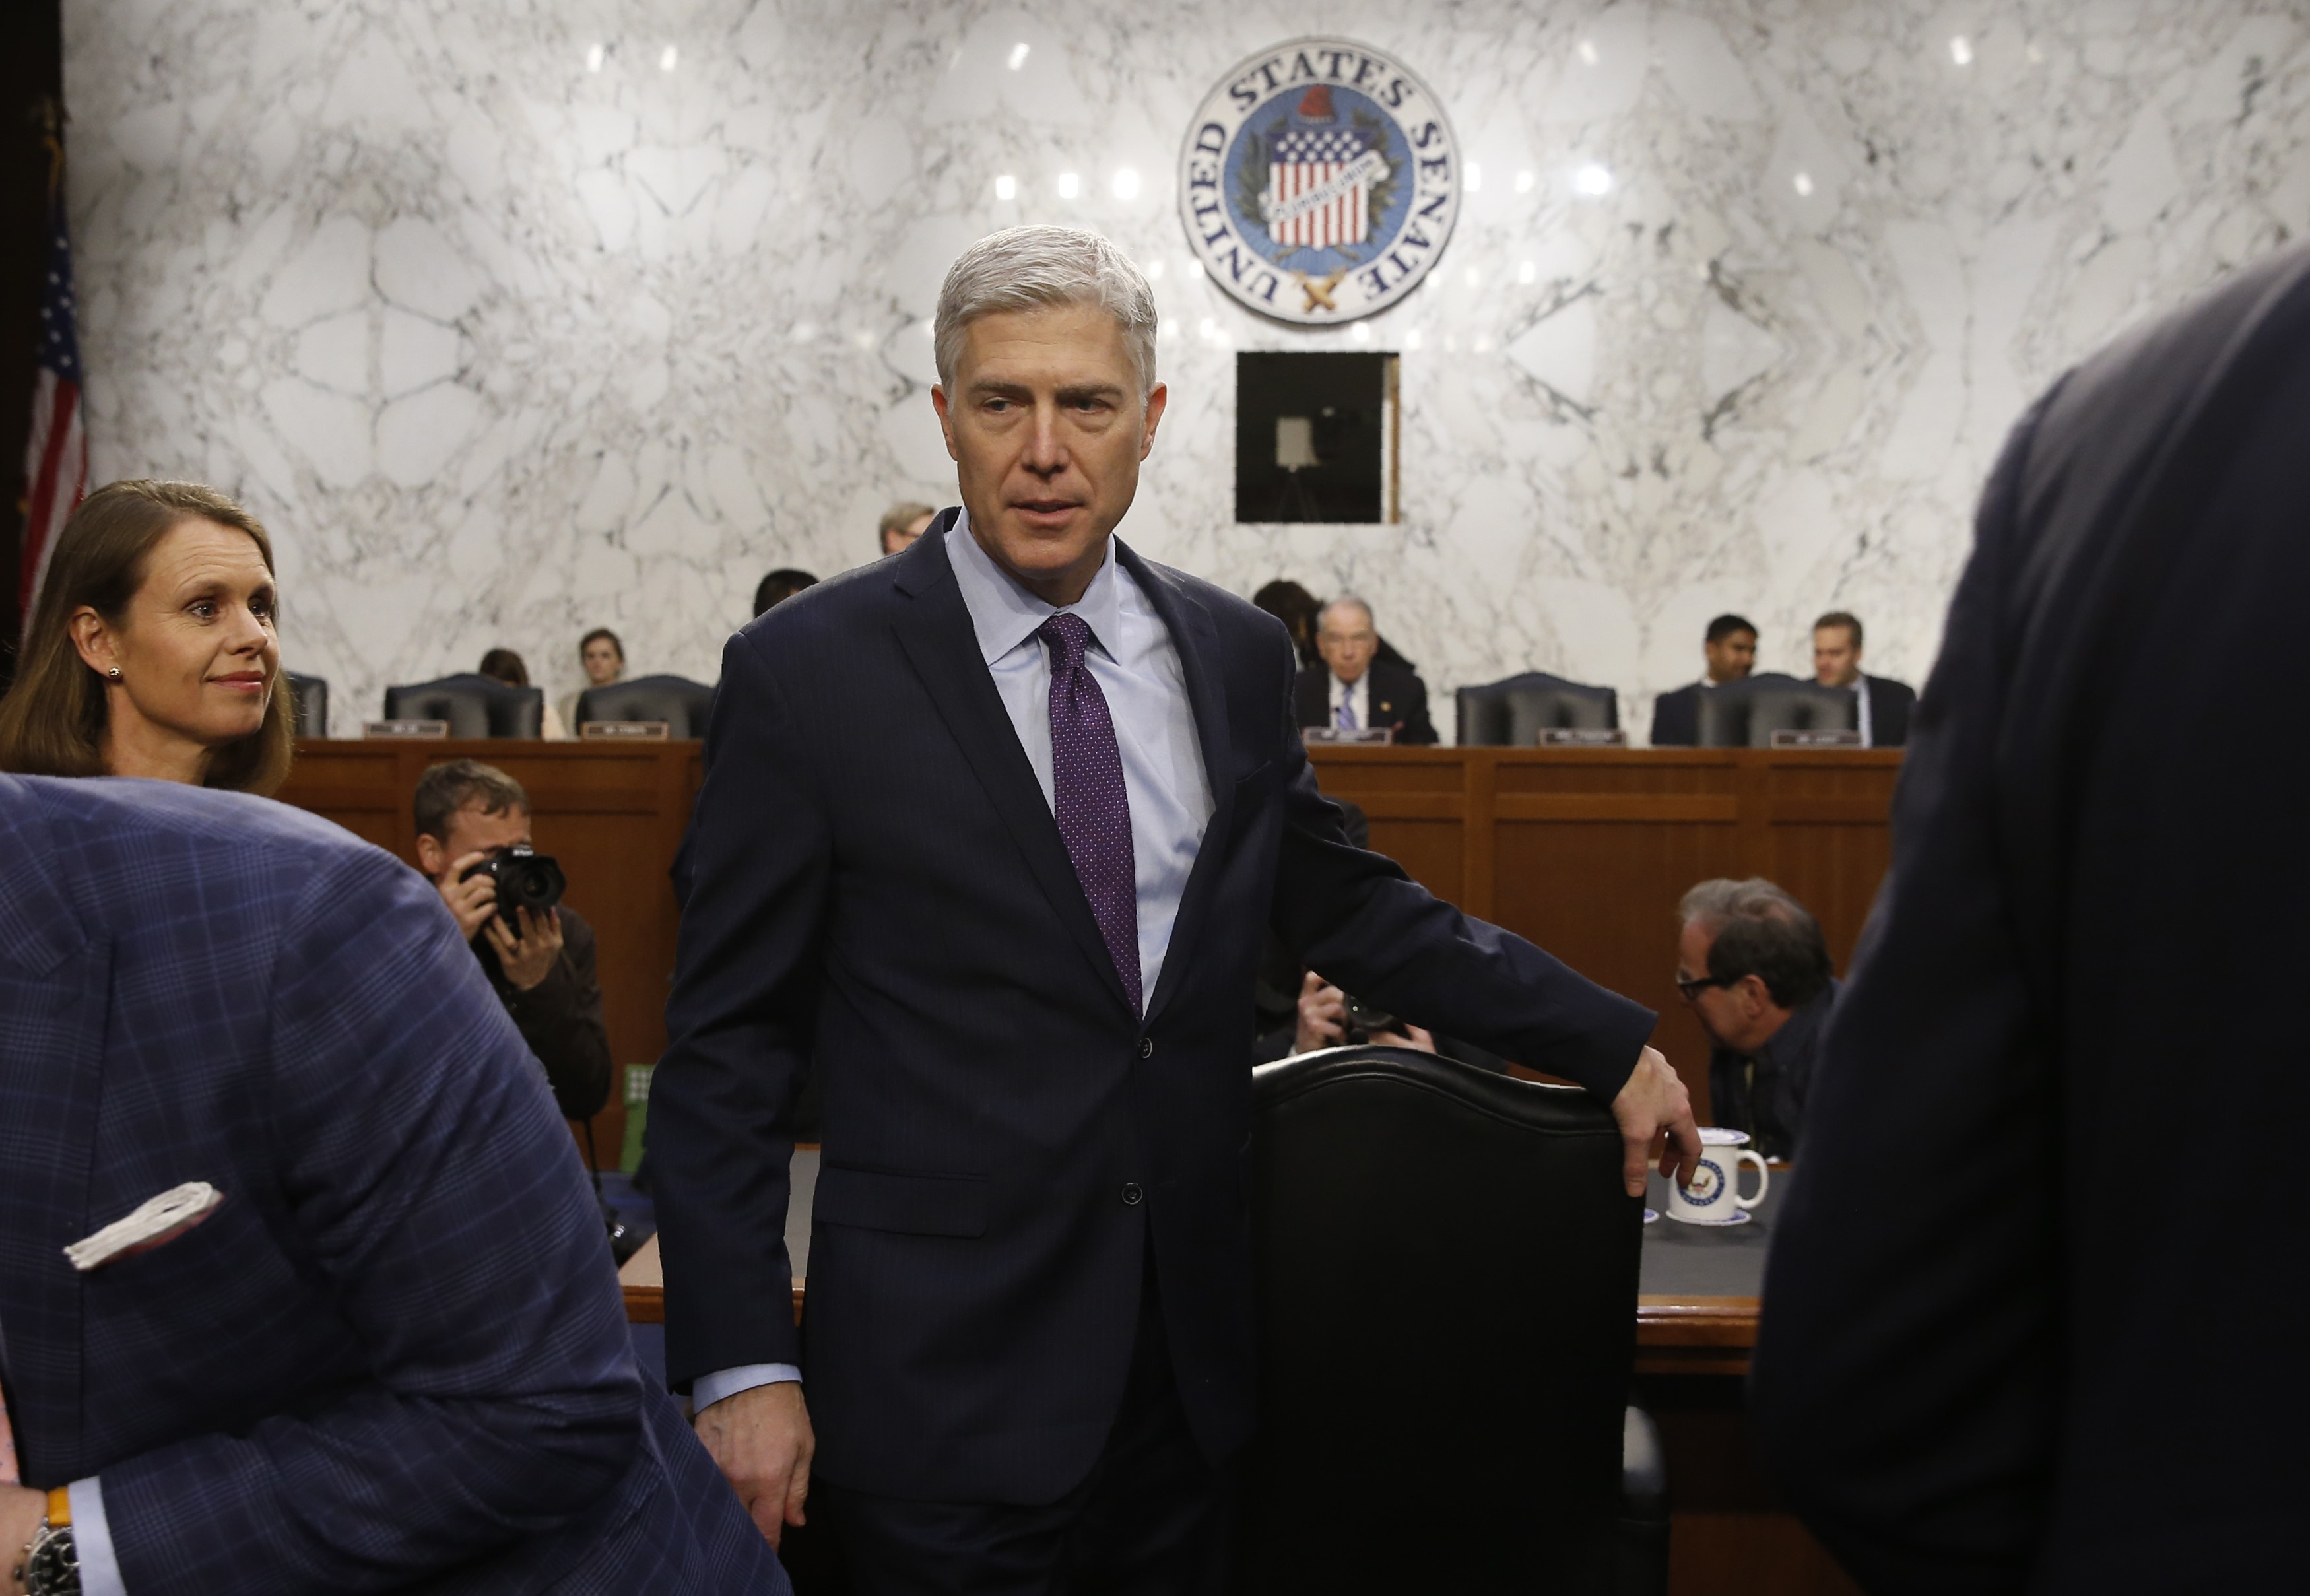 If Confirmed, Gorsuch Would Work to Restore Judicial Independence